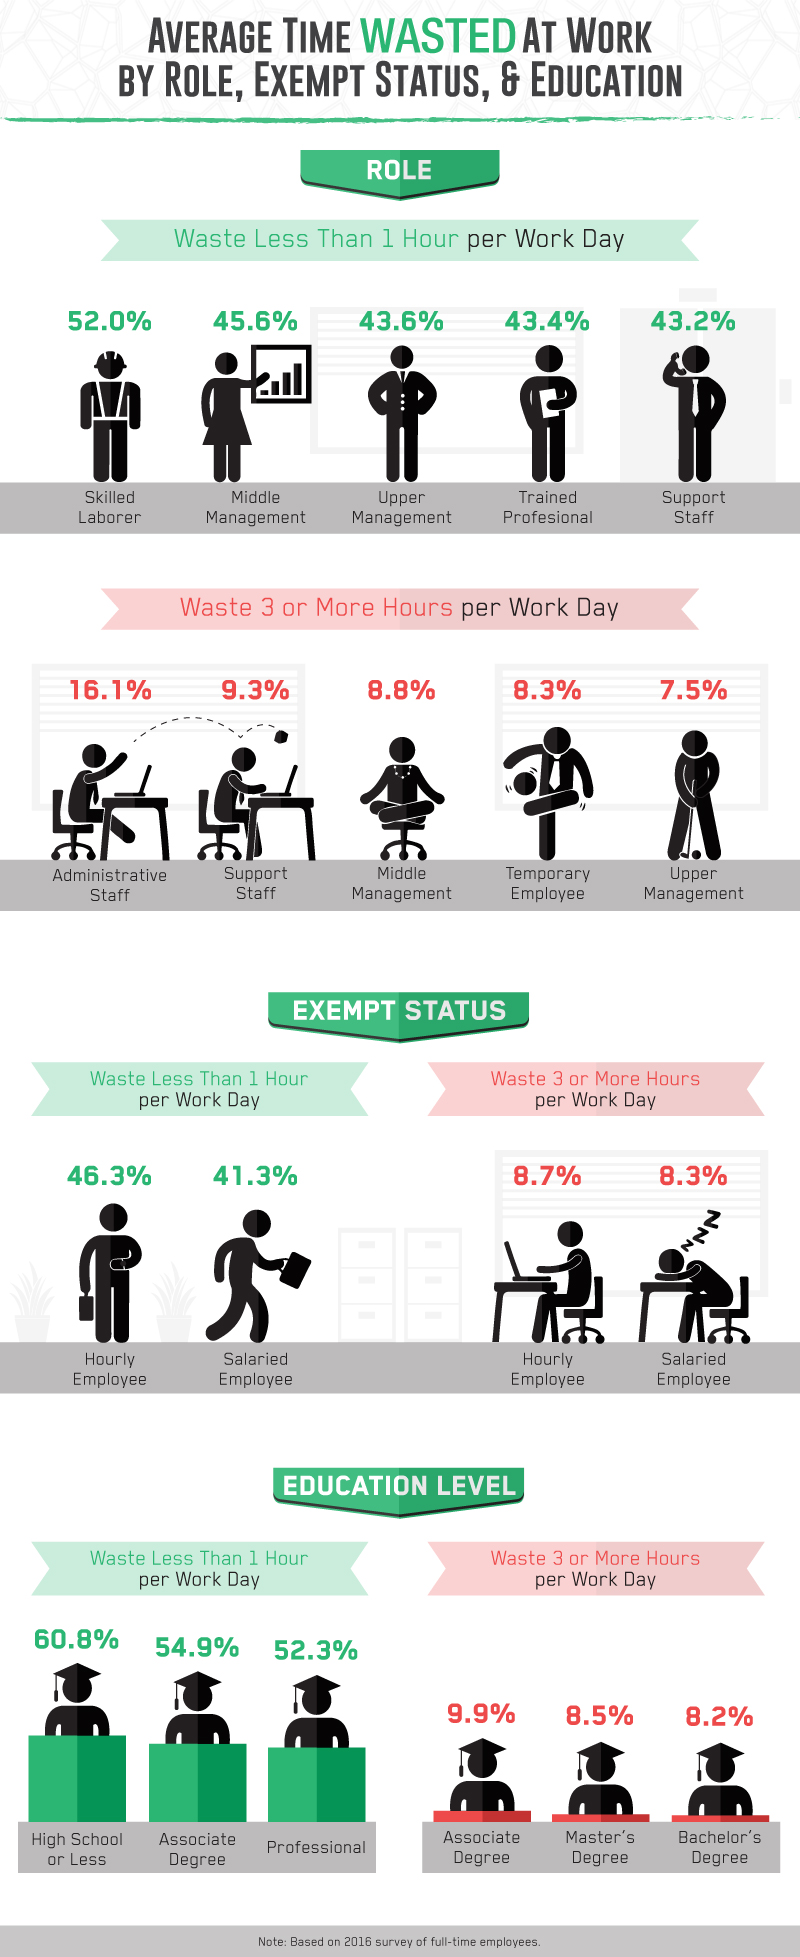 Average time wasted at work by role, exempt status, and education.